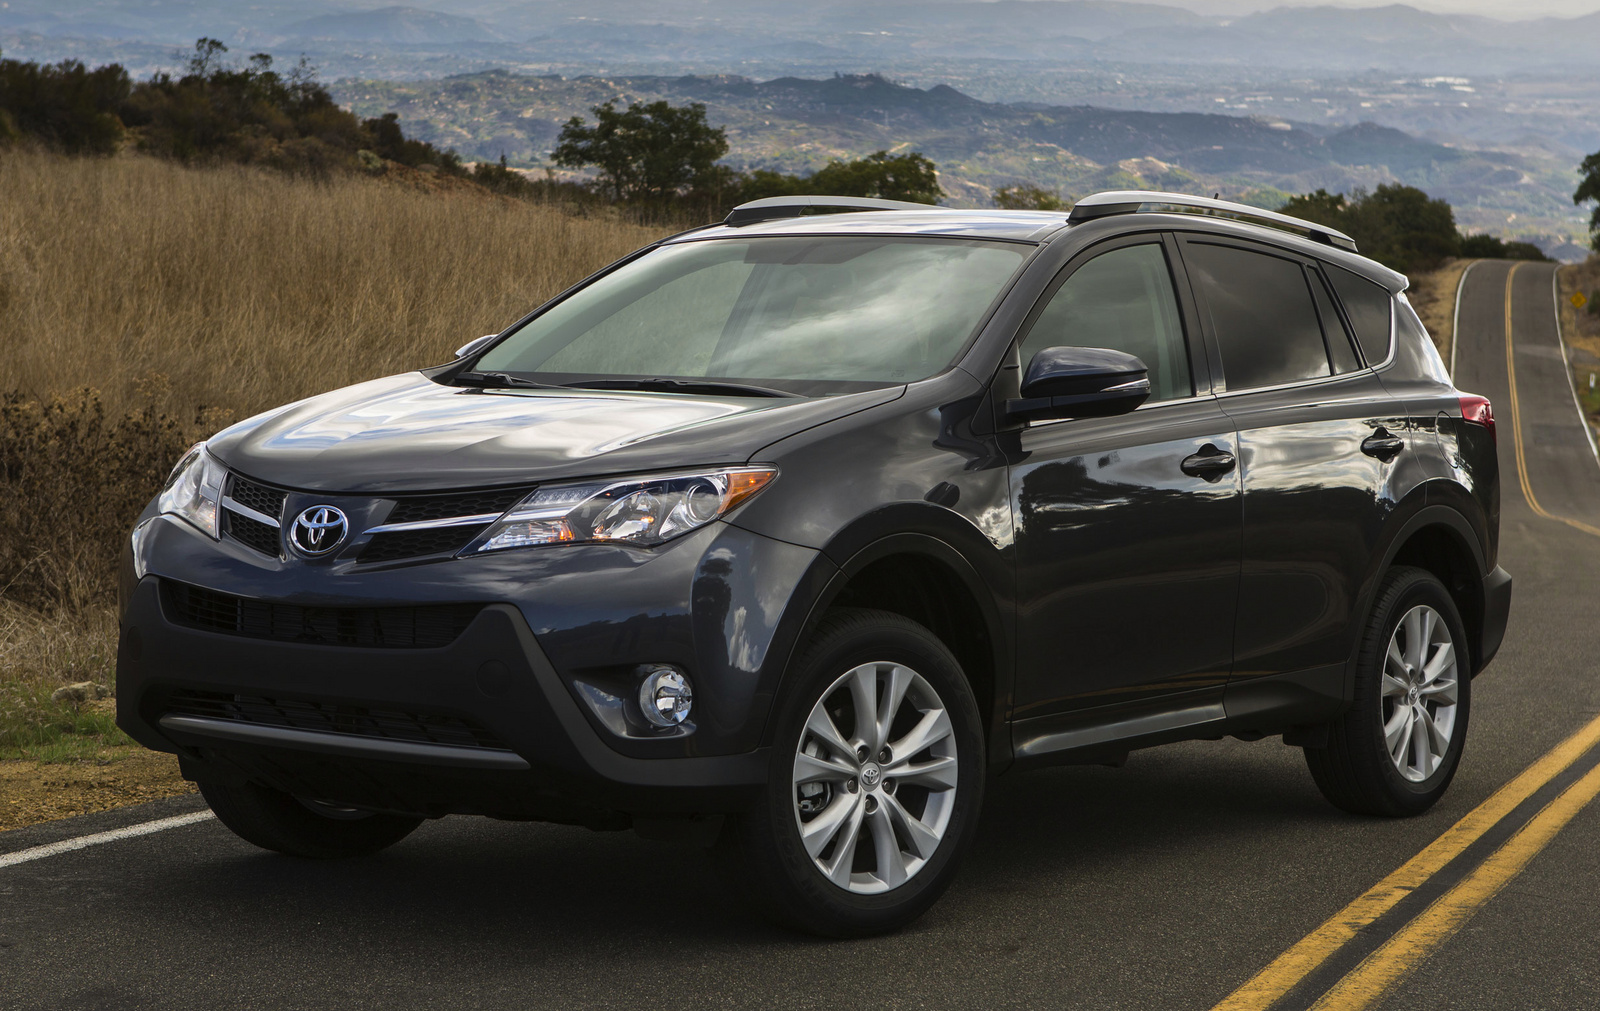 2014 toyota rav4 test drive review cargurus. Black Bedroom Furniture Sets. Home Design Ideas